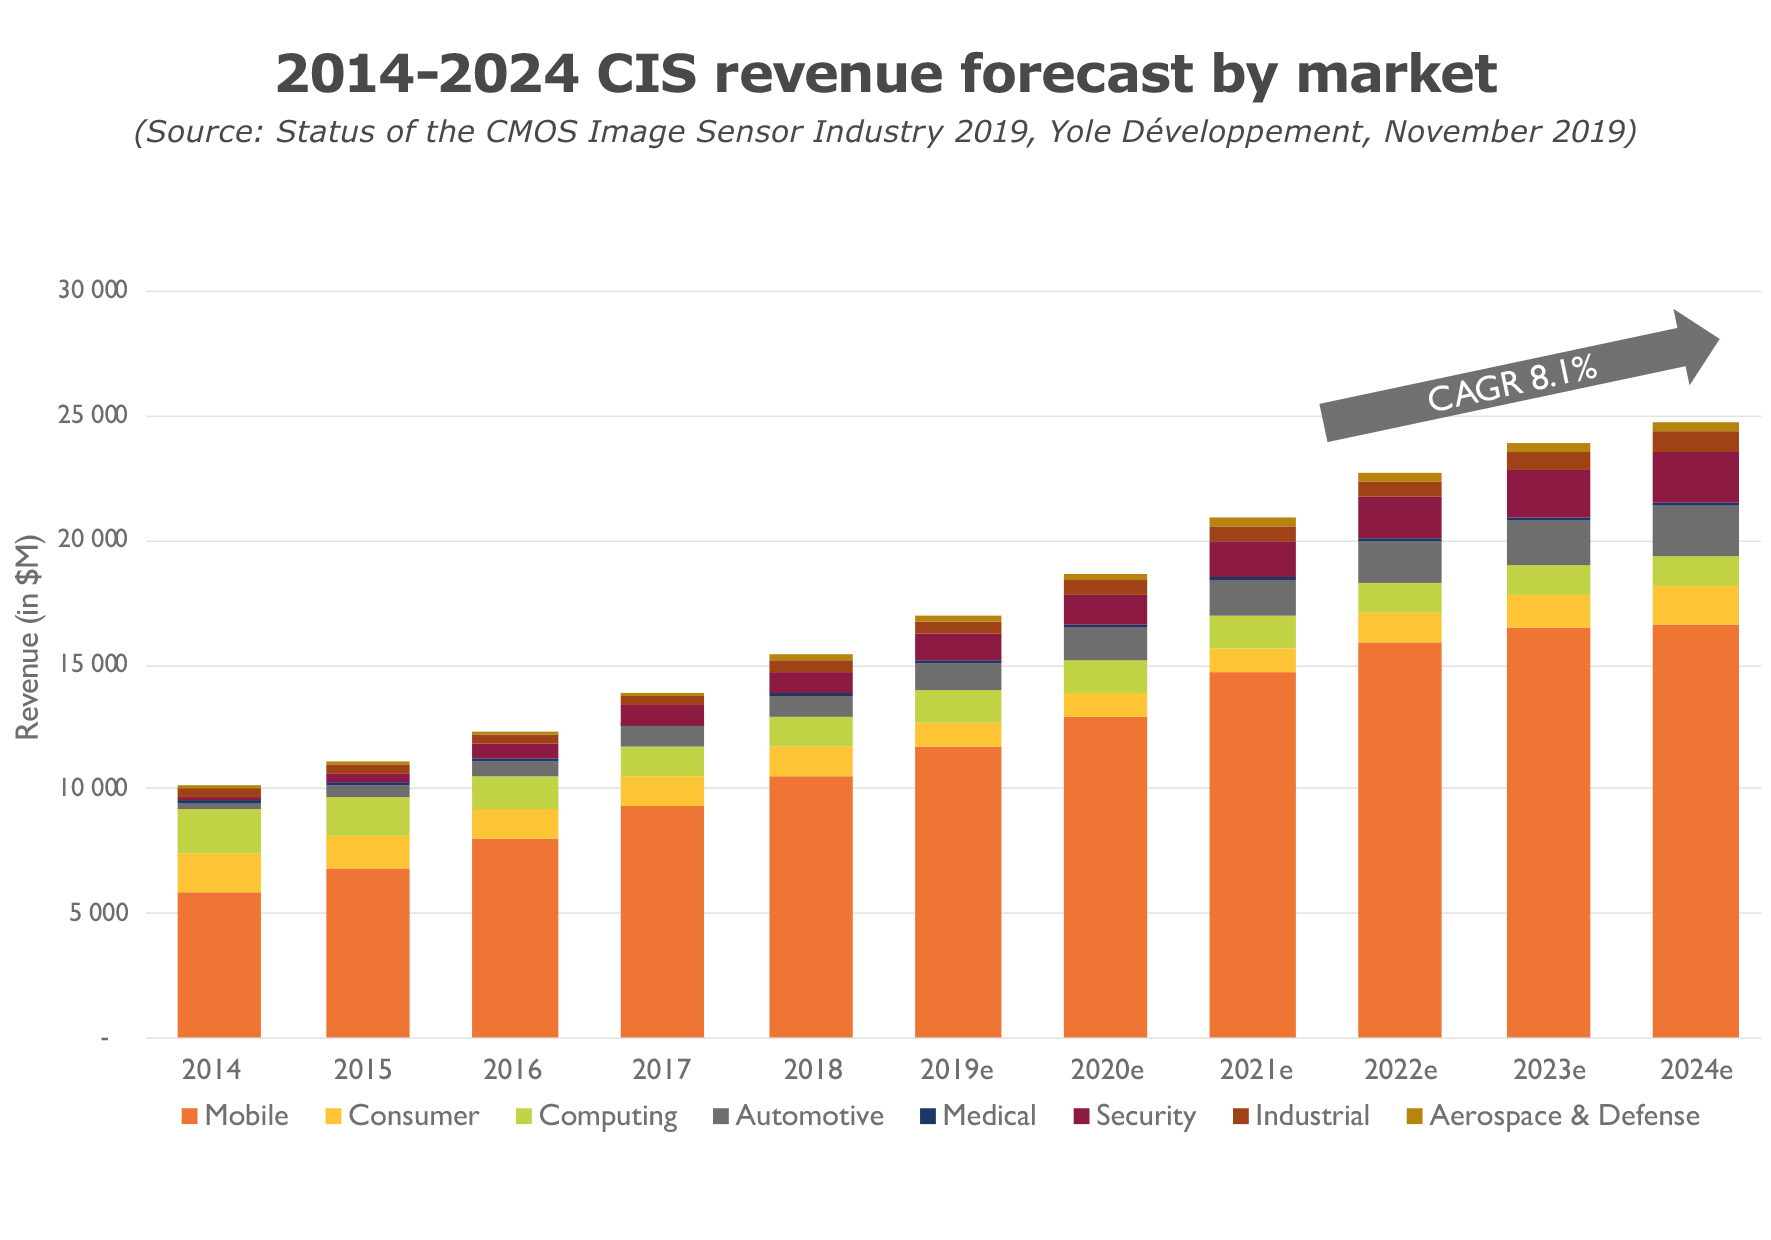 YD19057-2014-2024 CIS revenue forecast by market